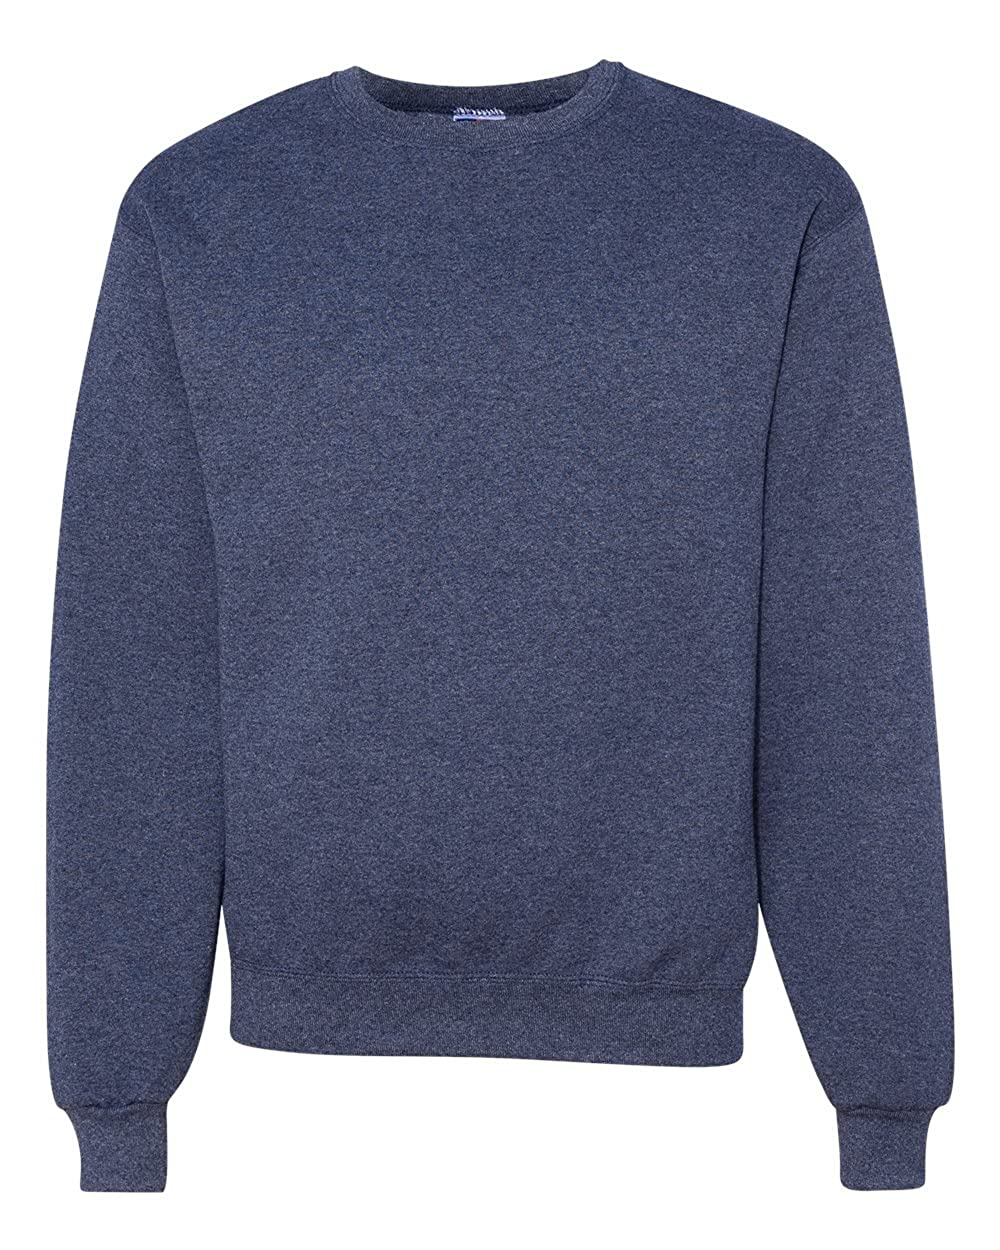 Jerzees mens 8 oz 562 -VINTAGE HTH NAVY-L 50//50 NuBlend Fleece Crew